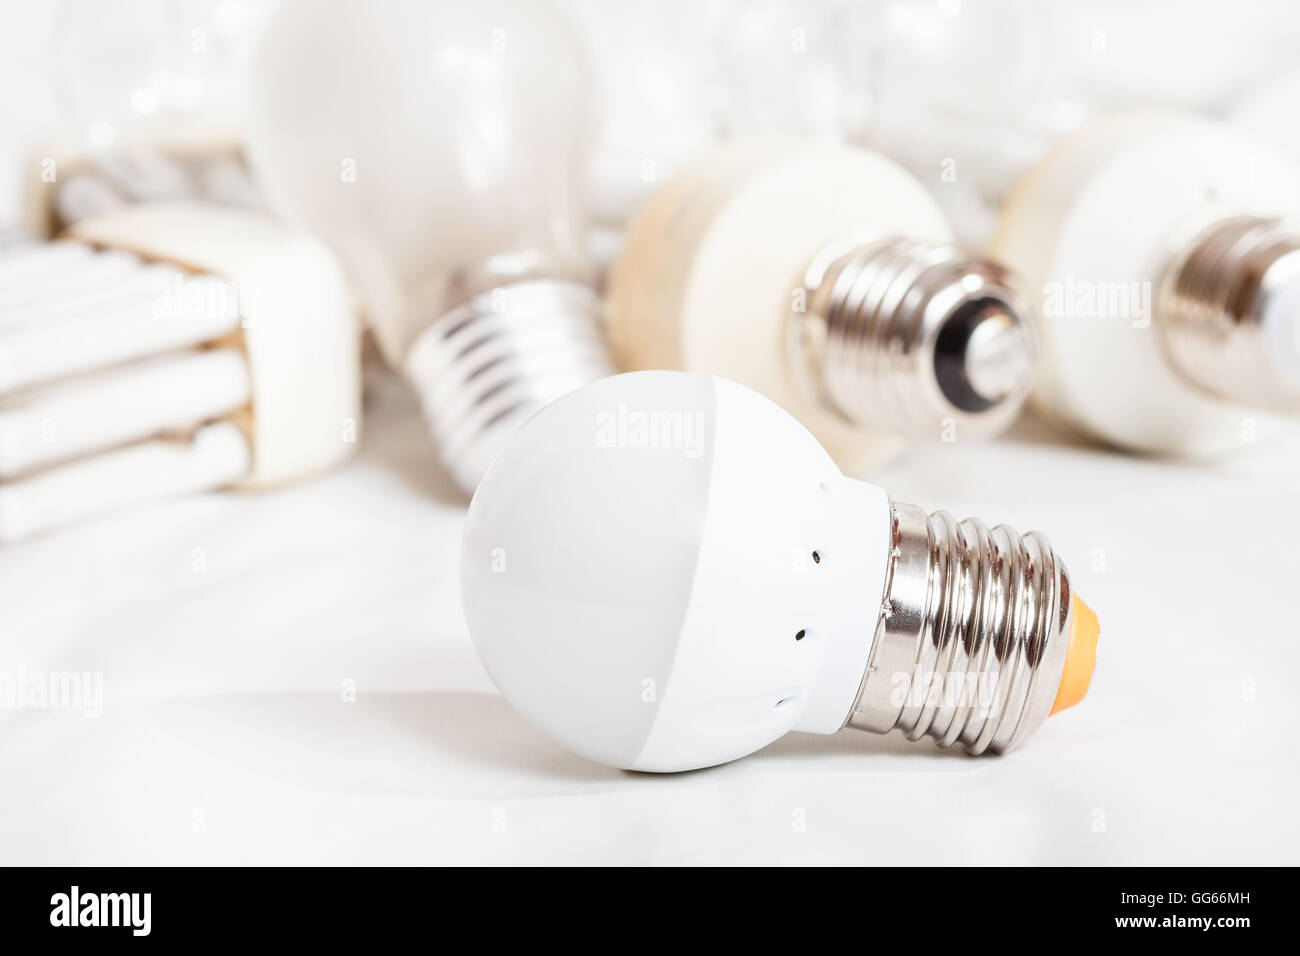 Pile Light Bulbs Stock Photos Images Alamy Bulb Ornaments On Incandescent Circuit Diagram Energy Saving New Led Lamp And Many Old Used Compact Fluorescent Lamps